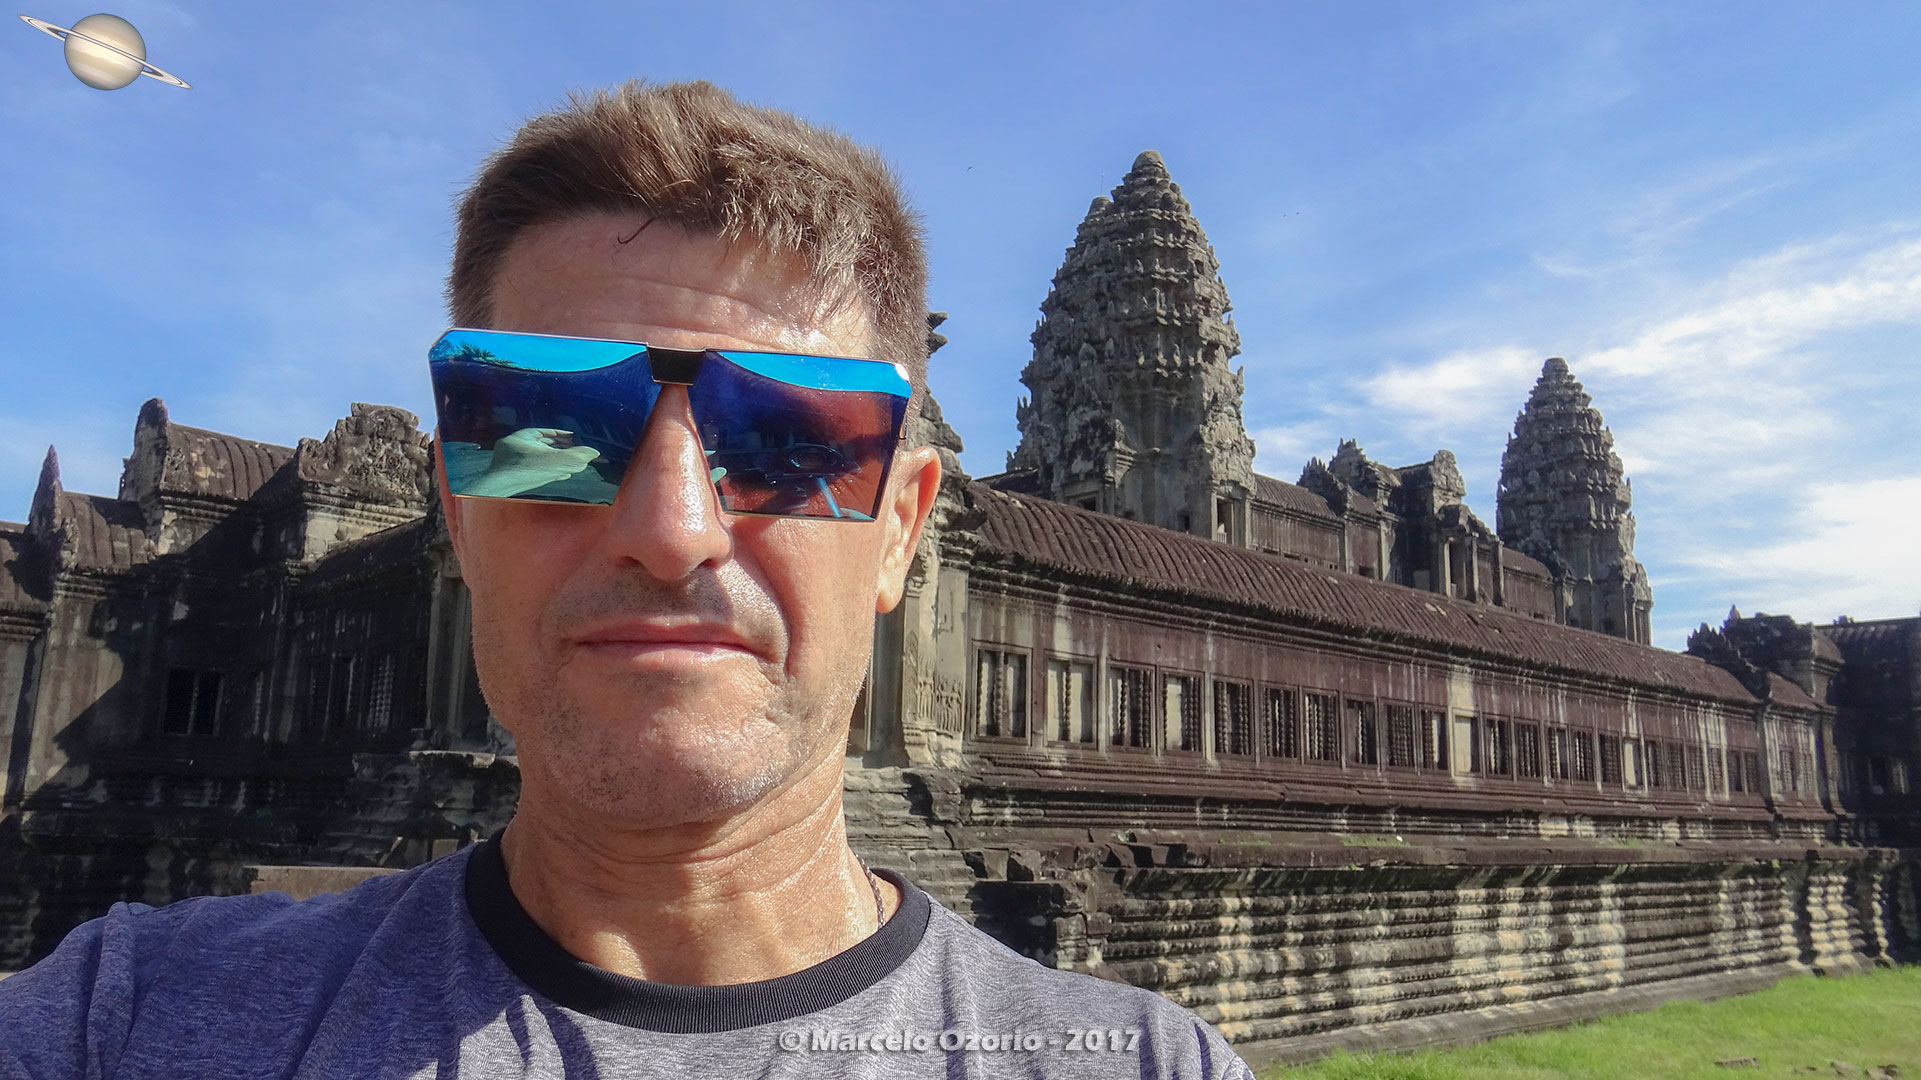 Marcelo Ozorio at Angkor Wat Temple - Siem Reap - Cambodia